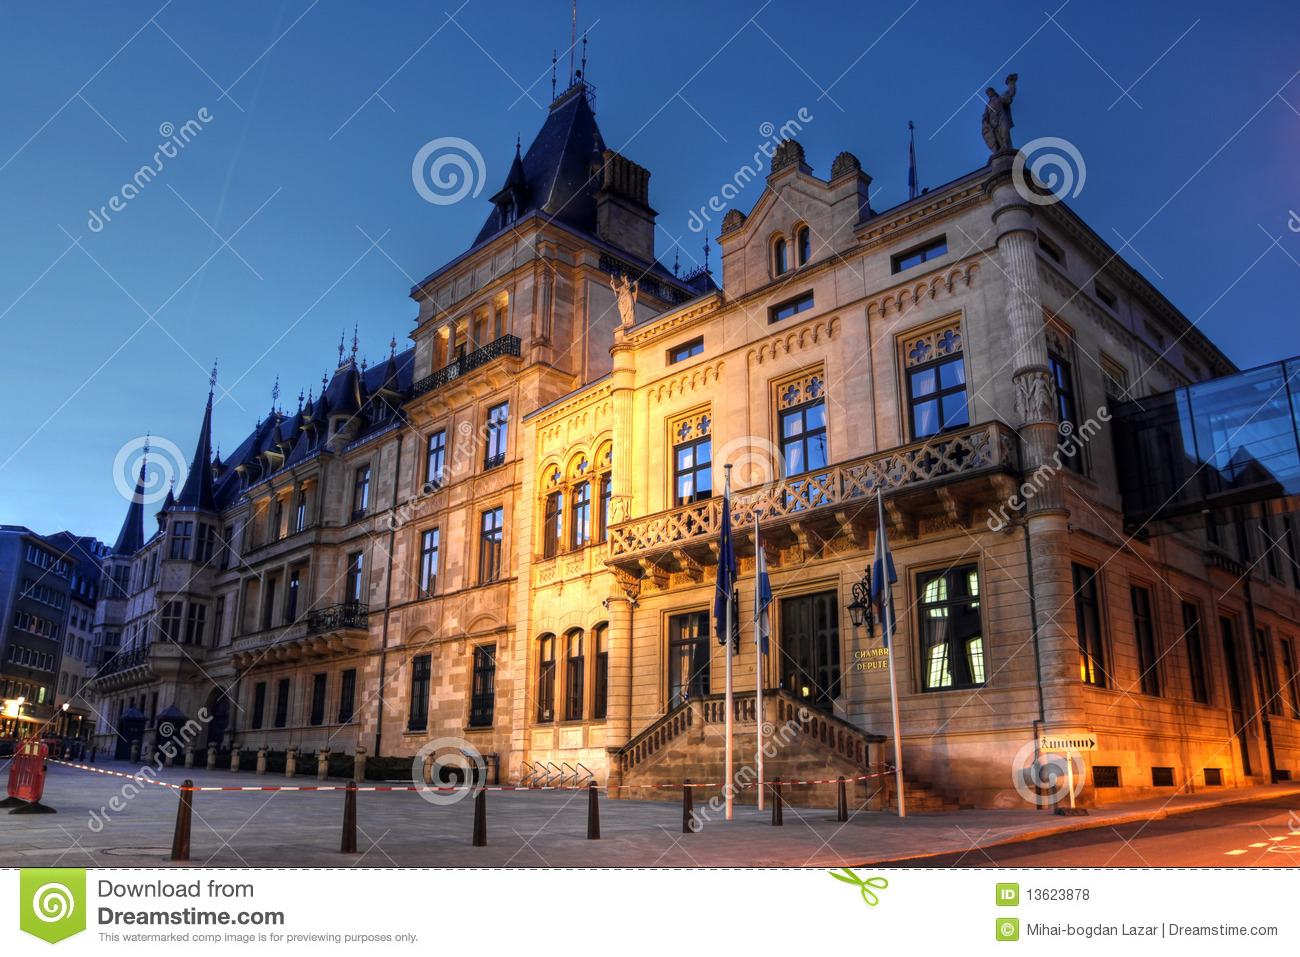 Palais grand ducal dans la ville du luxembourg photo stock for Chambre de deputes luxembourg